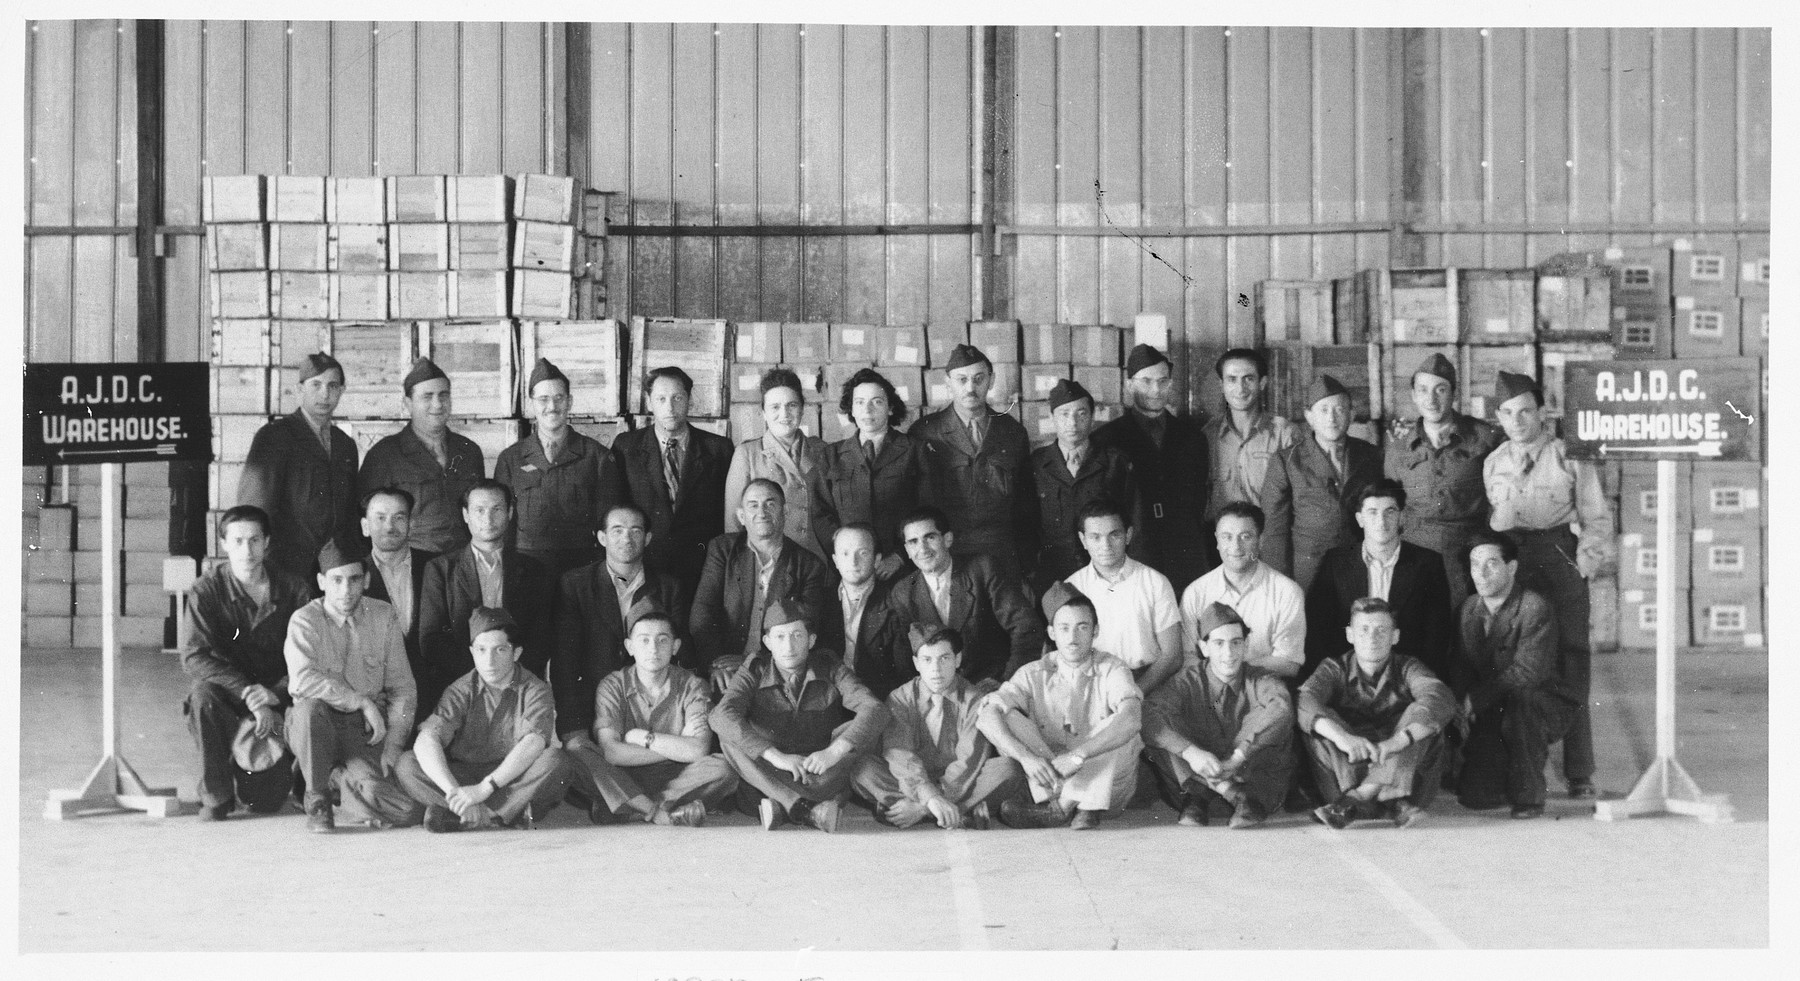 Group portrait of JDC employees at a warehouse in Munich.  Pictured in the front row: Loke Karklin (fourth from the left) and S. Kadosewitz (fifth from the left).  Middle row, left to right: unidentified, Dreicez, Zigelbaum, A. Berger, Leizerowitz, R. Willonsky, Israel Gillman, unidentified, S. Mozeshow, and Karklin.  Back row: Isroel Ipp (third from the left), Ira Jochelson (seventh from the left), S. Kochman (ninth from the left), and A. Kochman (eleventh from the left).